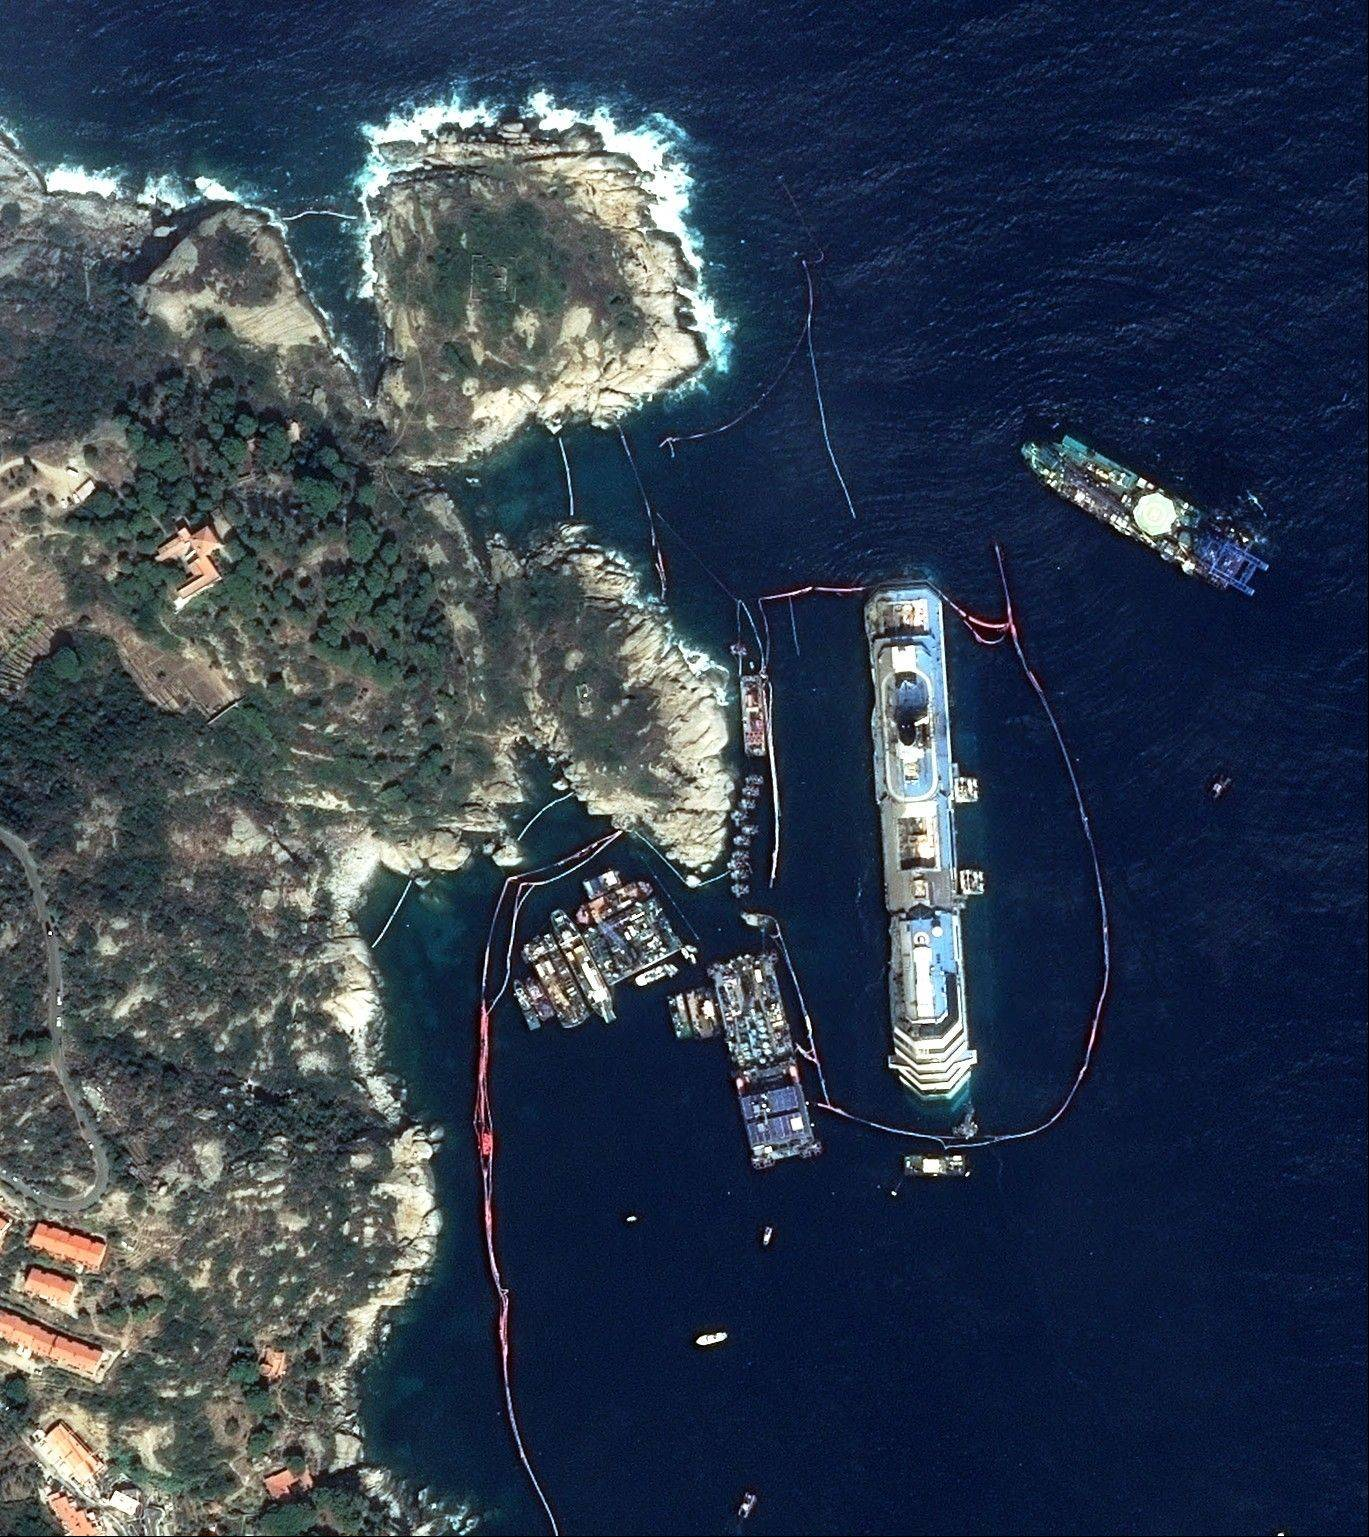 This photo provided by Astrium shows the upright Costa Concordia off Giglio Island, Italy, Tuesday, Sept.17, 2013 . Engineers declared success on Tuesday, Sept.17, 2013 as the Costa Concordia cruise ship was pulled completely upright during an unprecedented, 19-hour operation to wrench it from its side where it capsized last year off Tuscany.